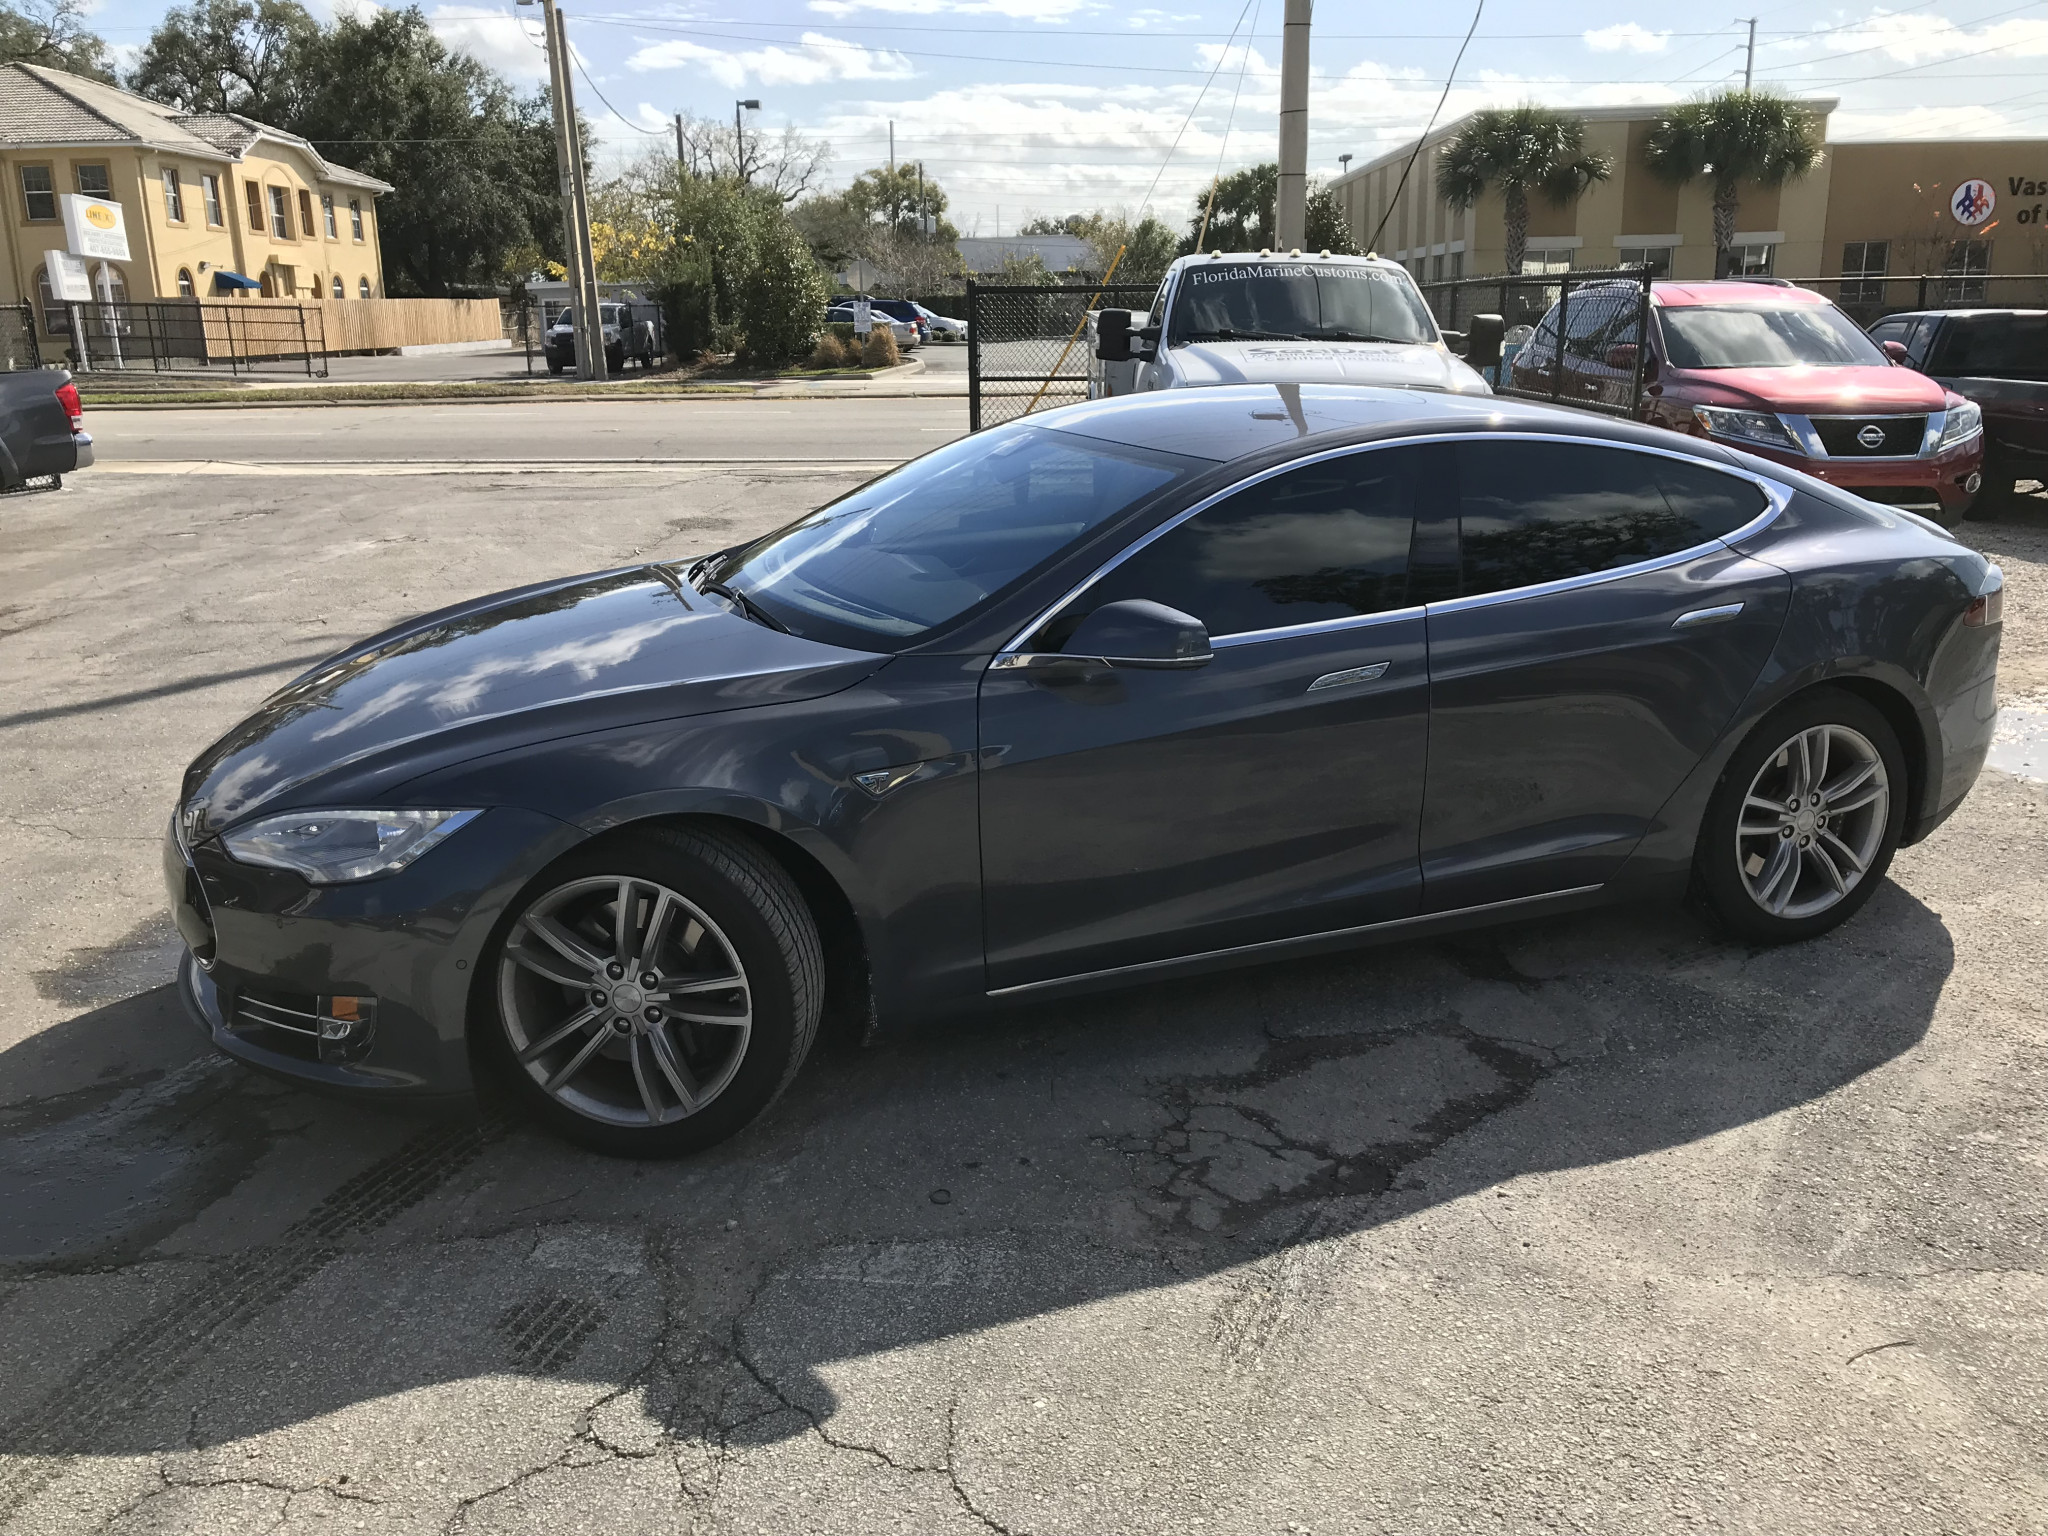 Best Window Tint For Tesla Model S In Orlando Fl Ultimate